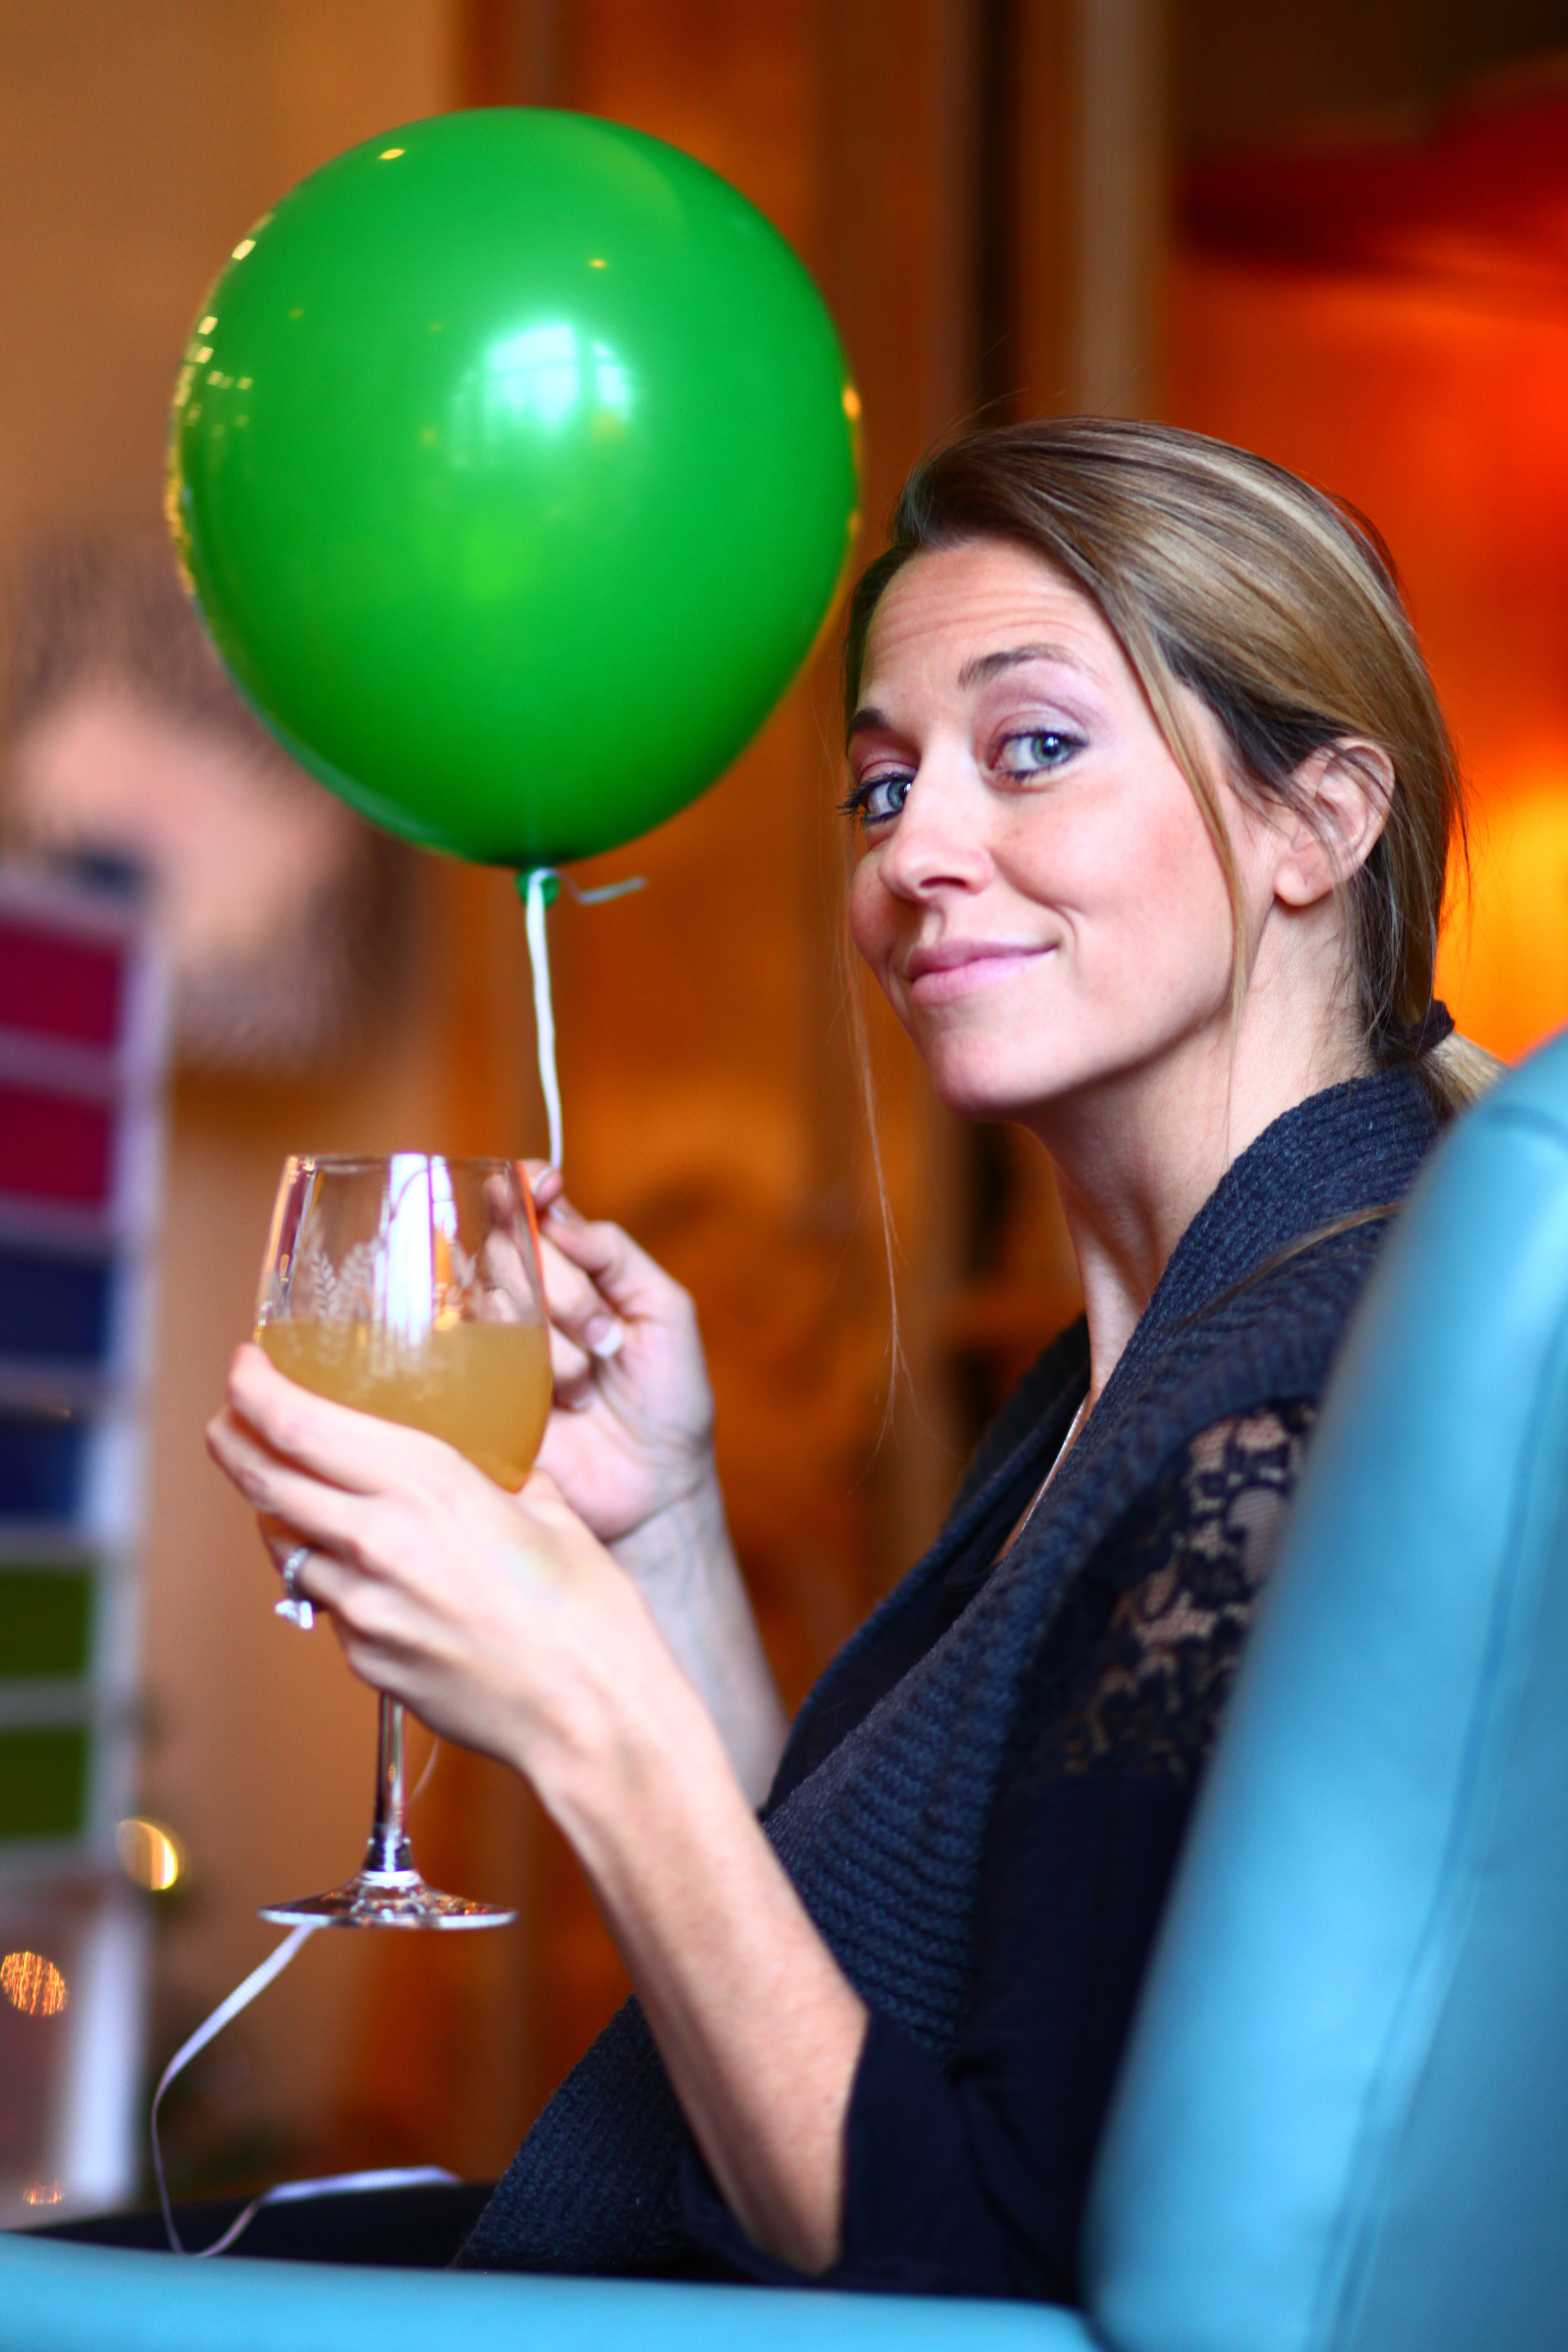 Allison with her wine and balloon, Christmas, 2014